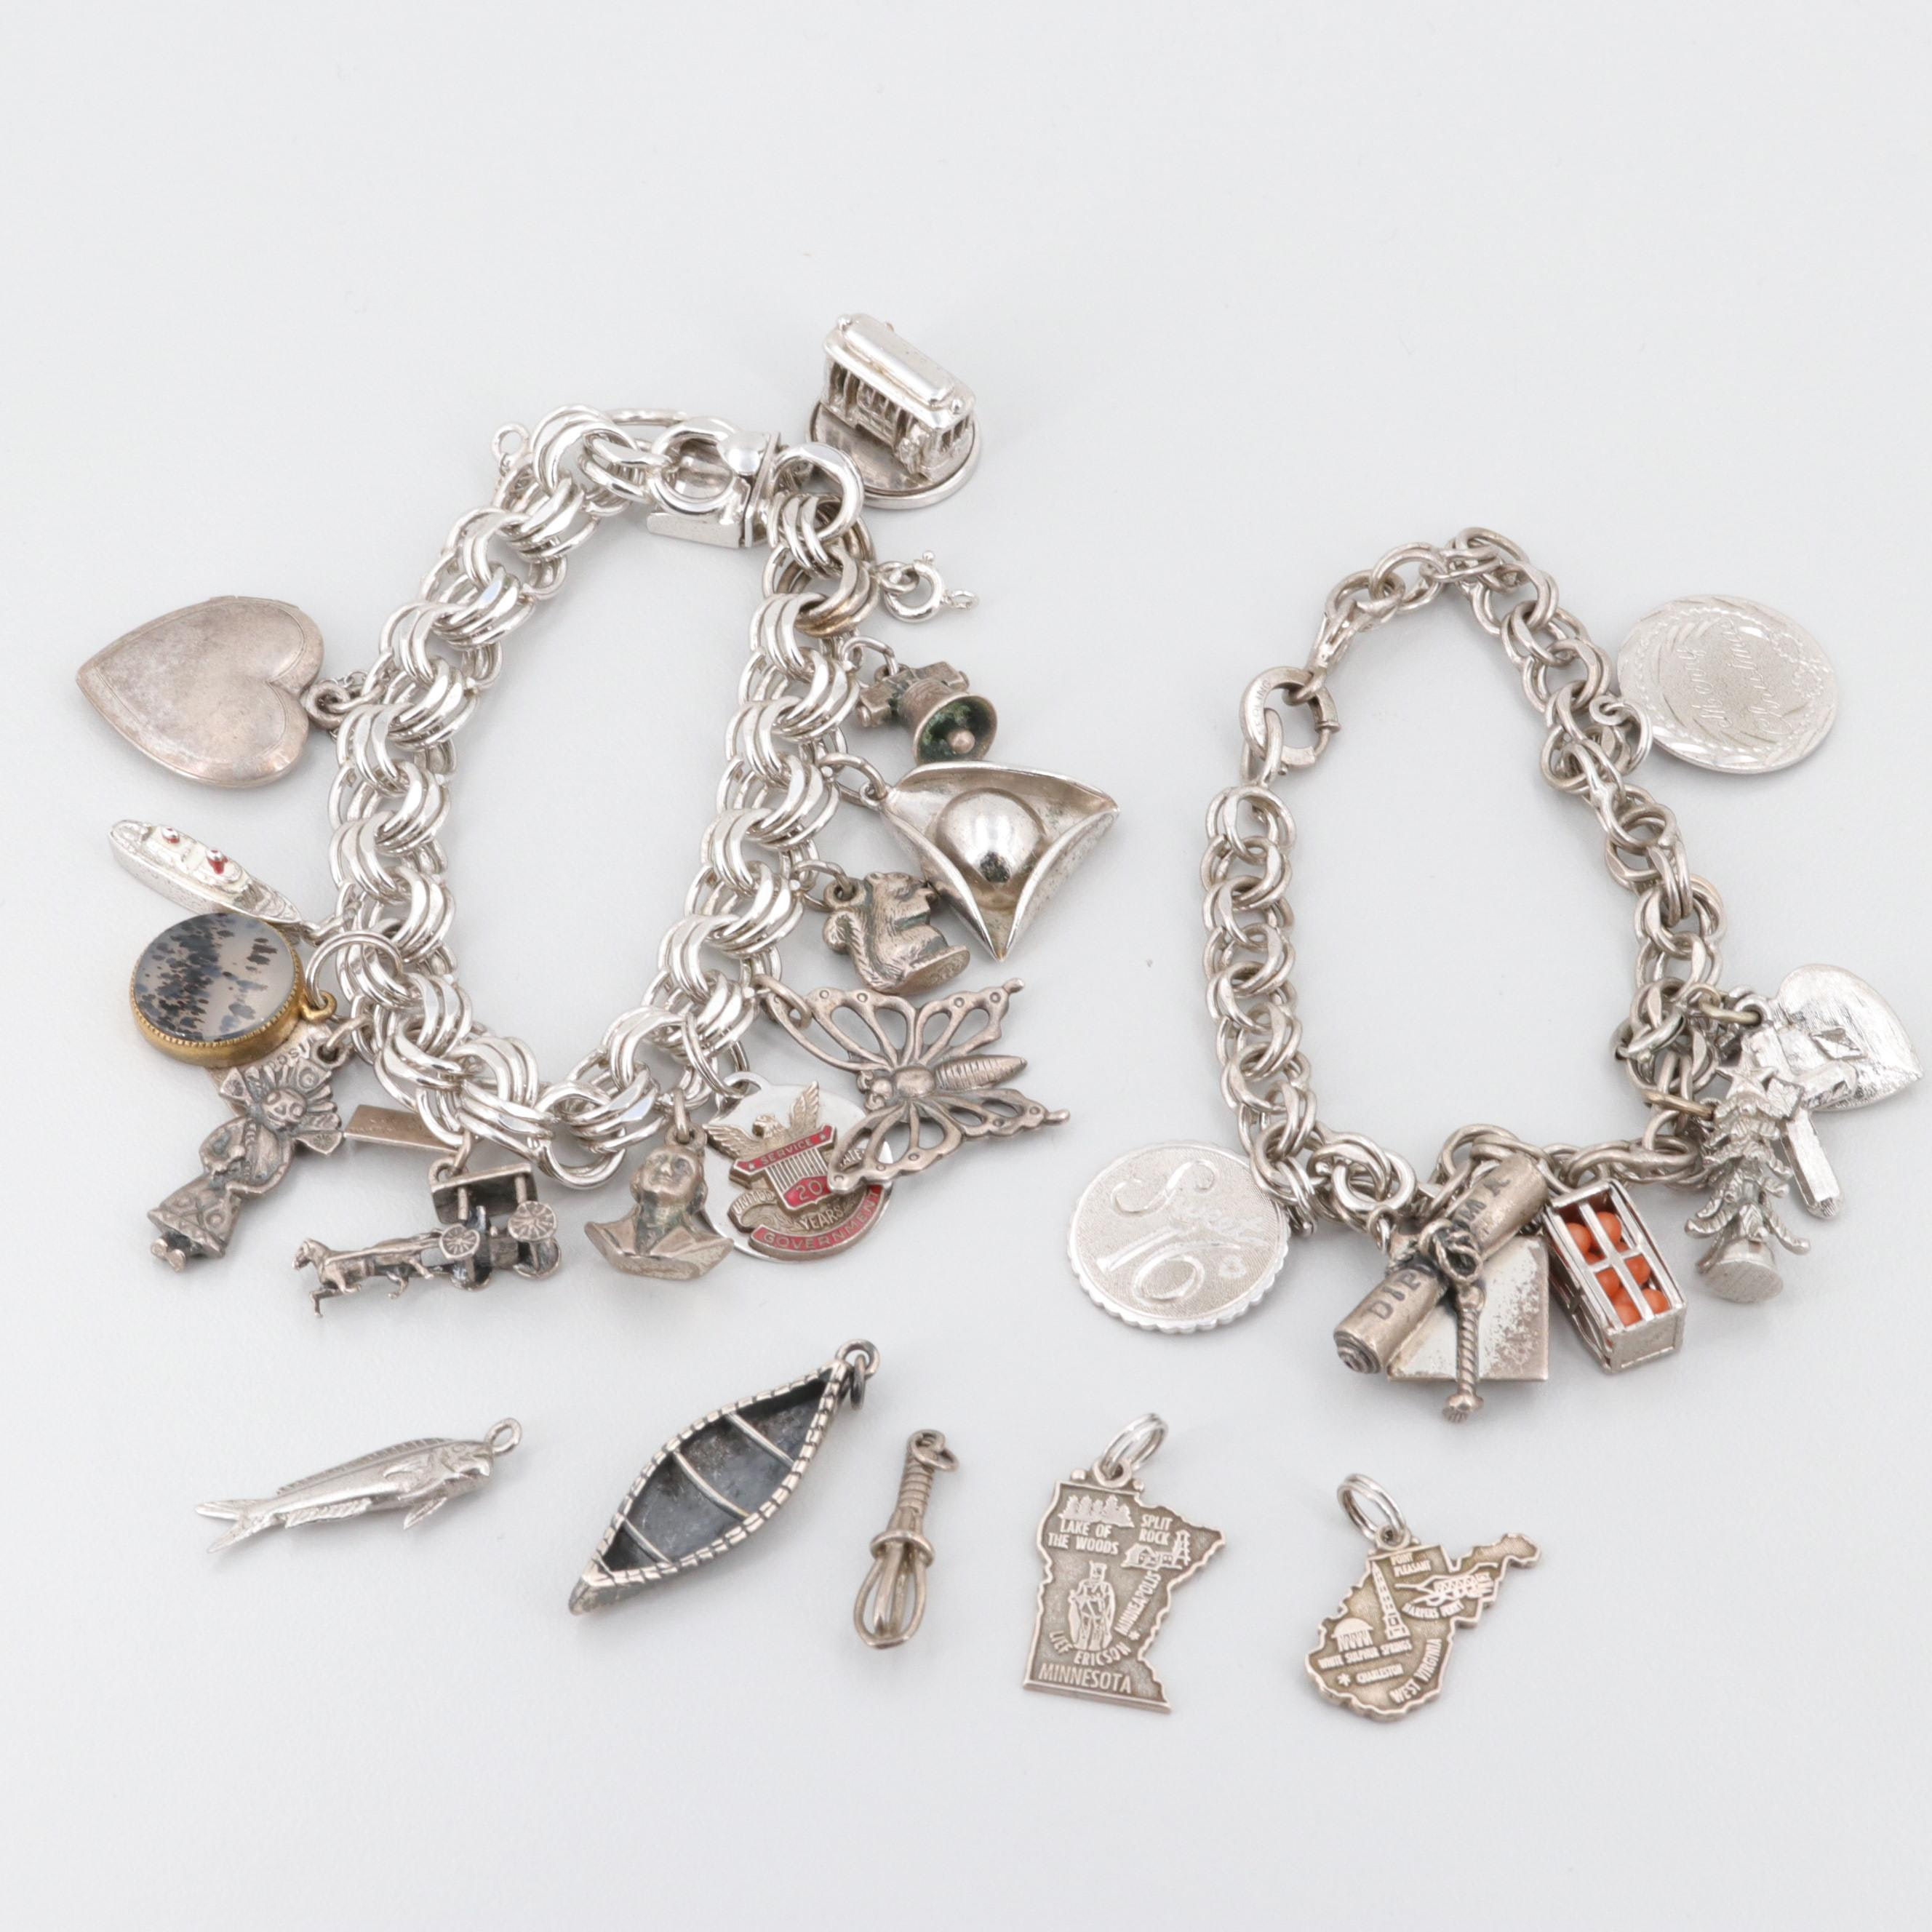 Sterling Silver Charm Bracelet and Loose Charms Including Agate and Glass